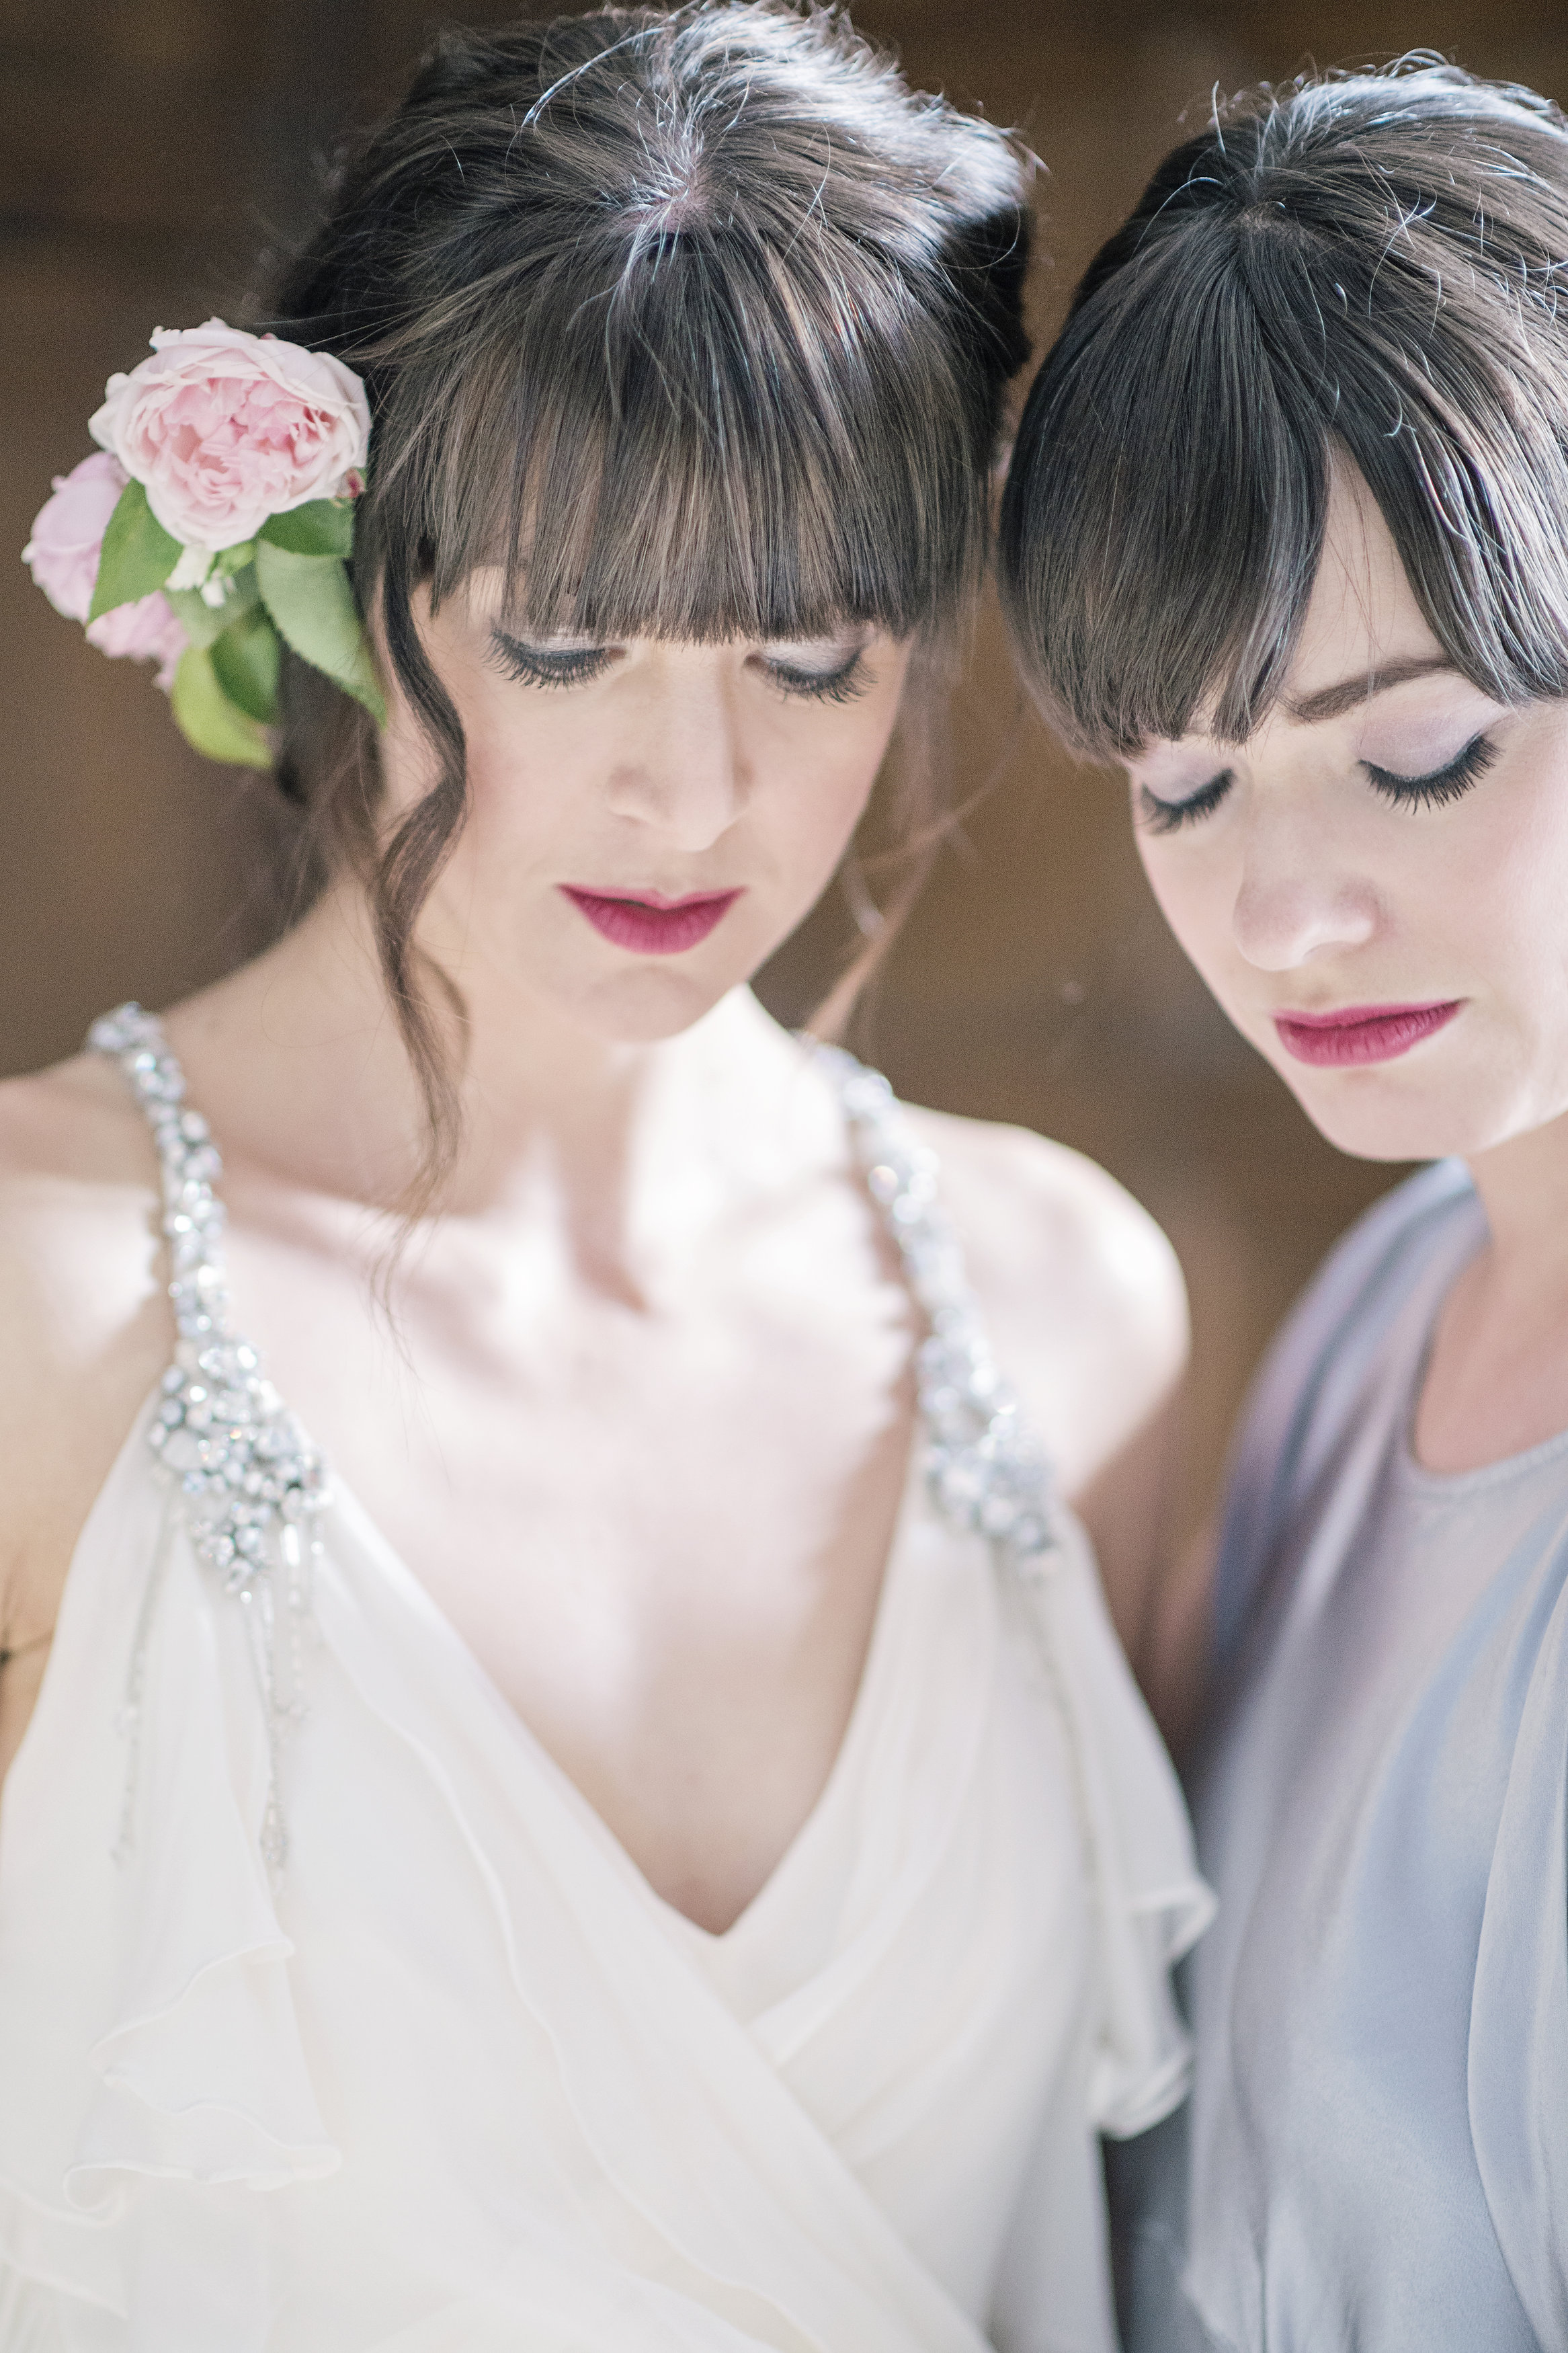 Victoria Taylor - Bridal Makeup in Essex, Hertfordshire